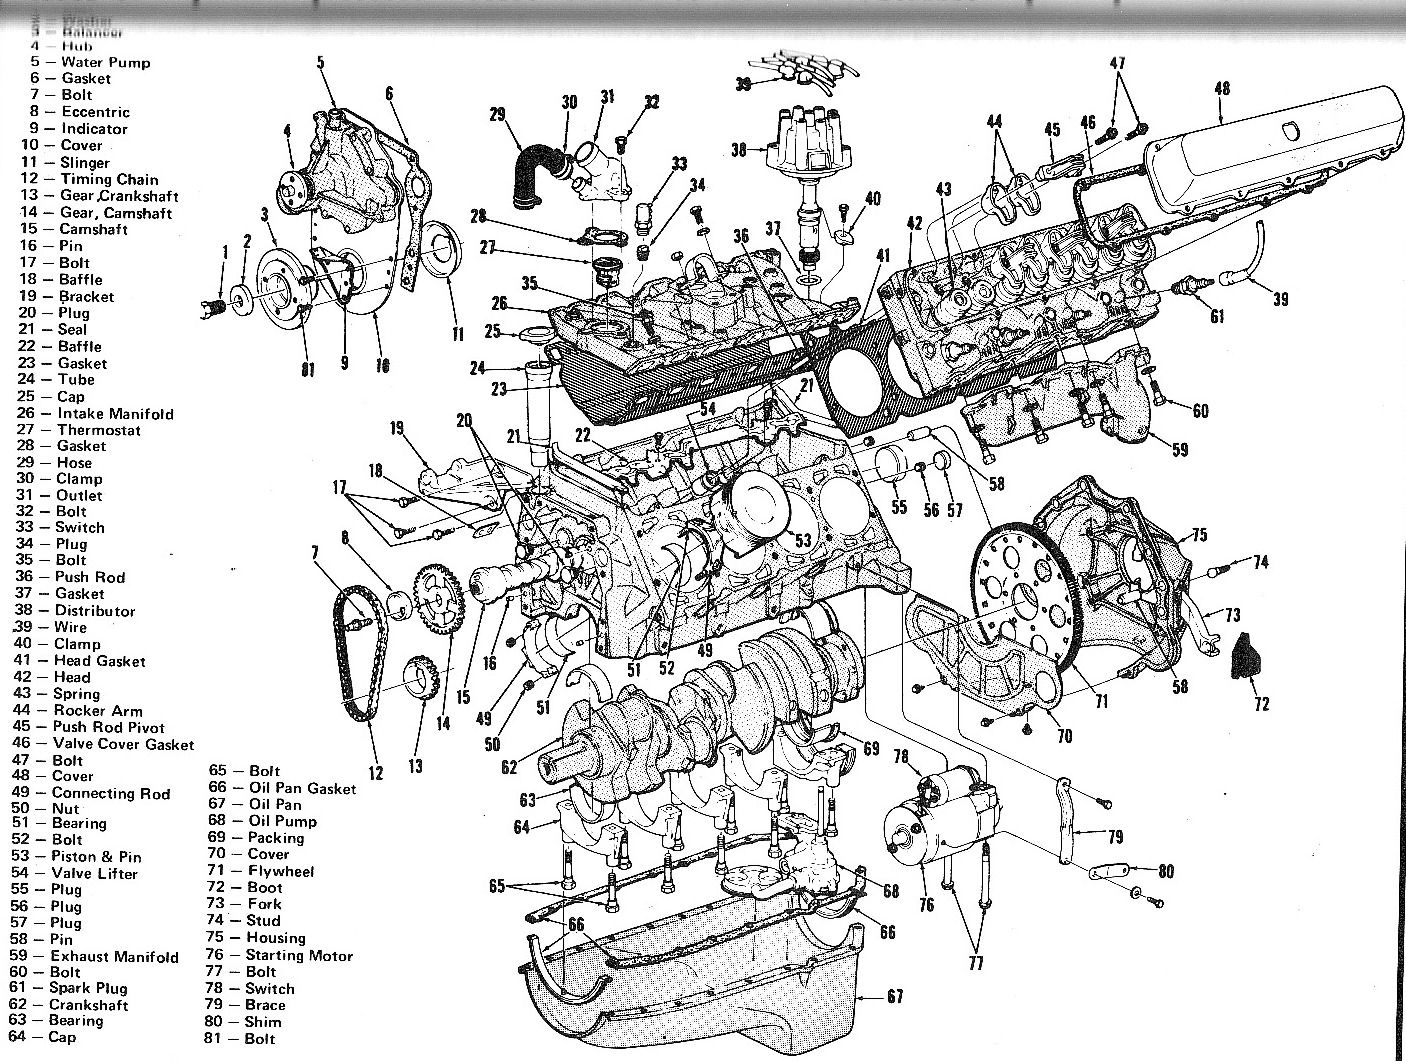 Complete V 8 Engine Diagram